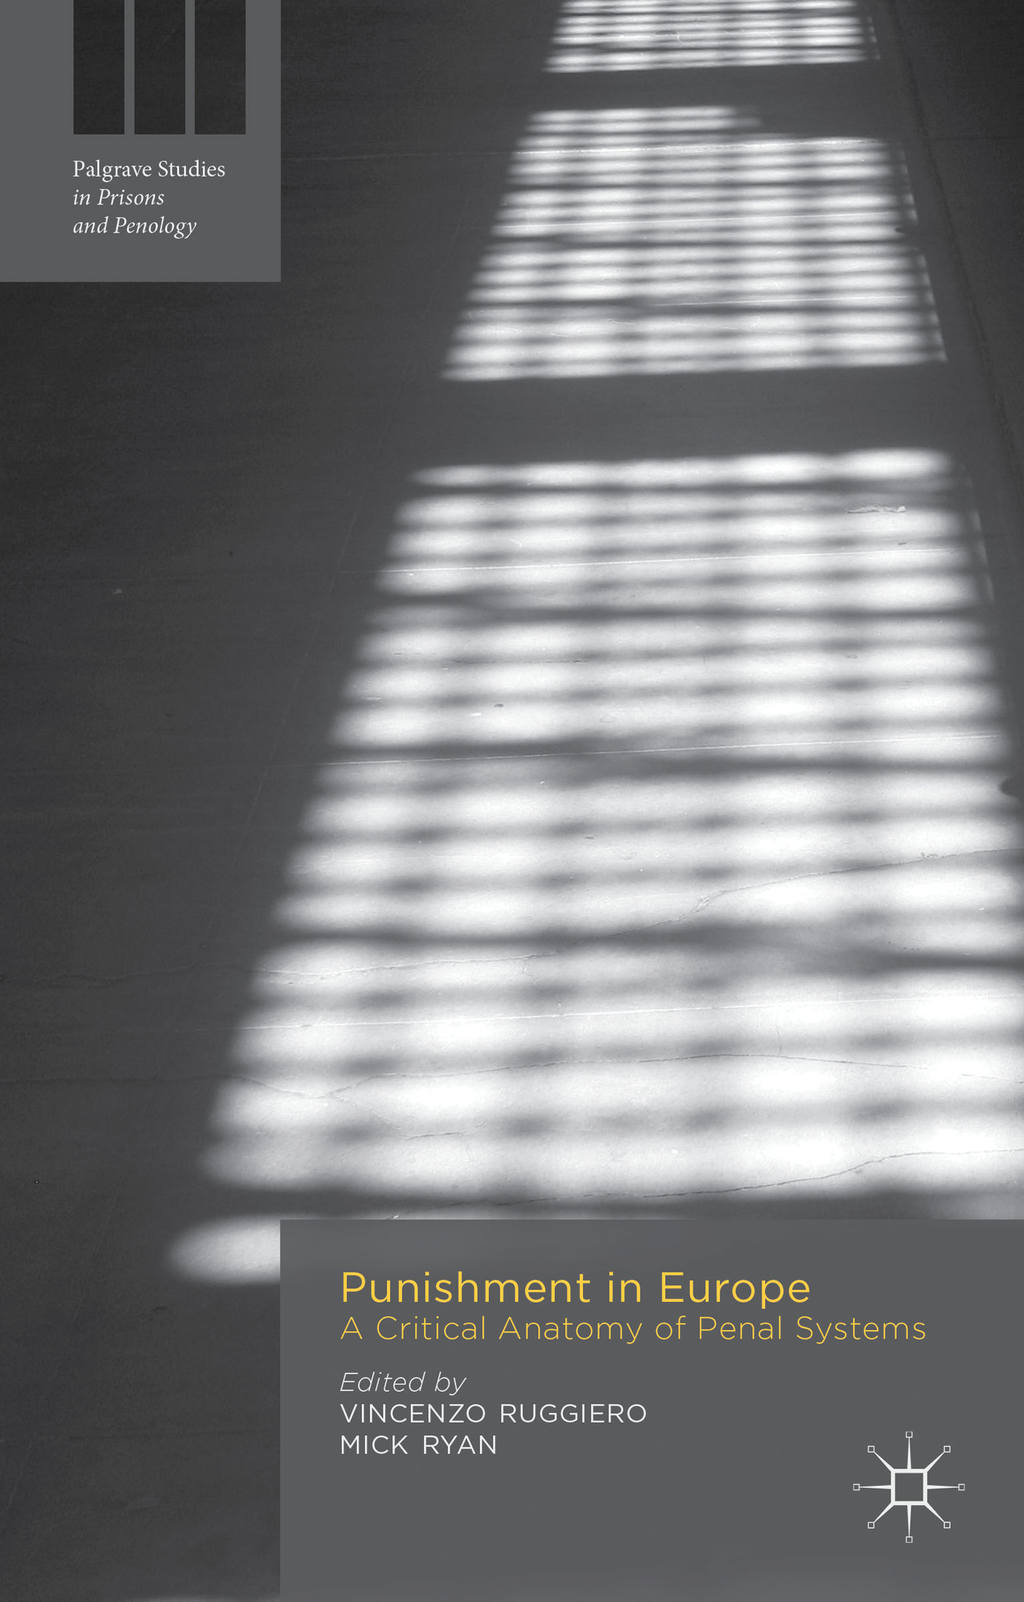 Punishment in Europe A Critical Anatomy of Penal Systems